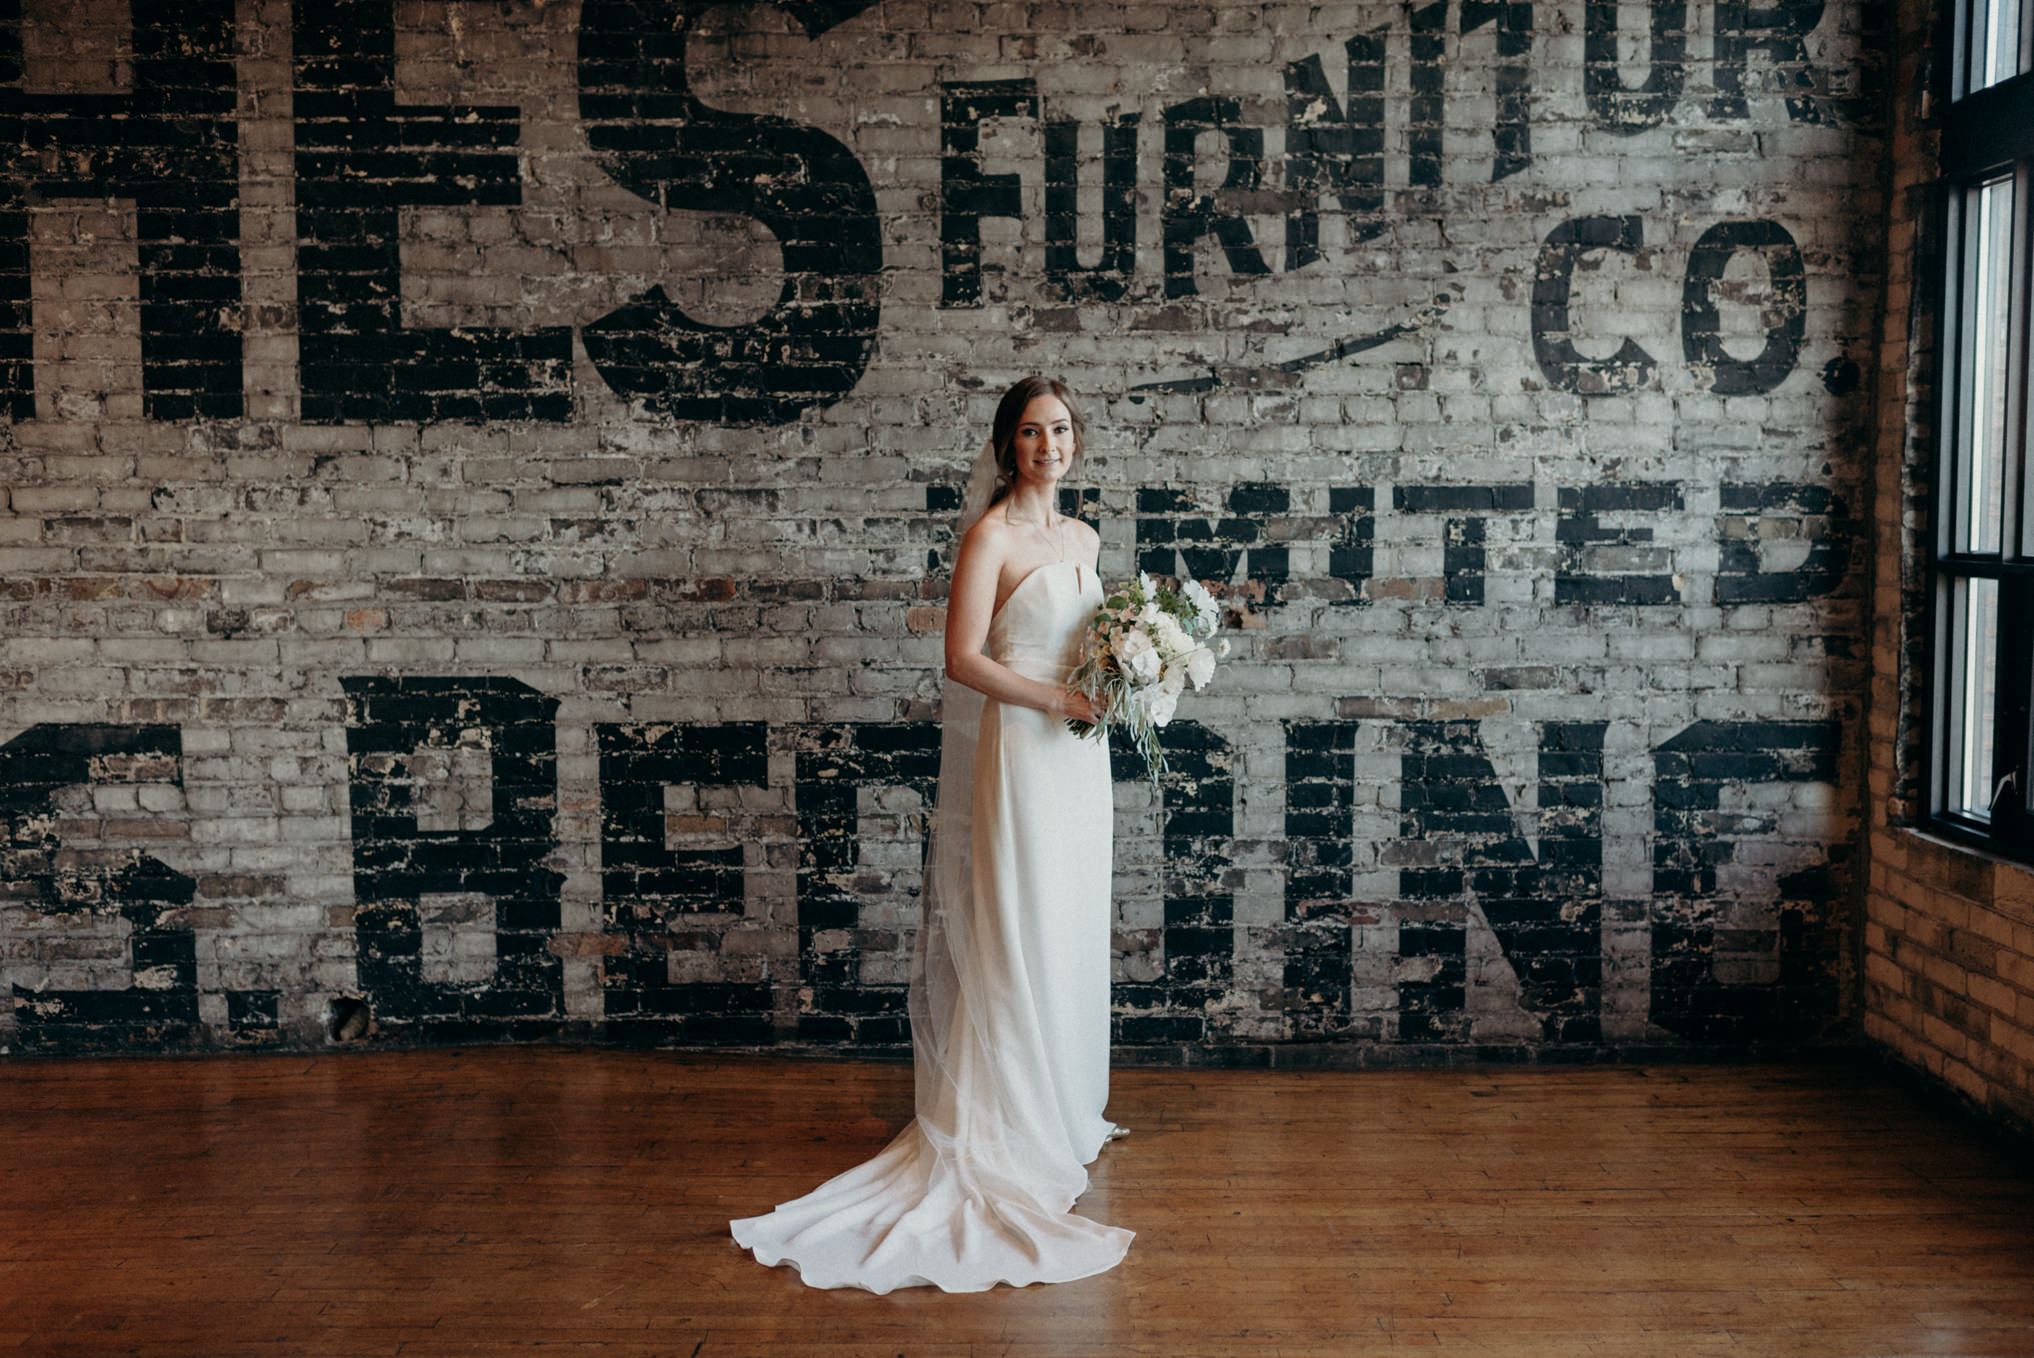 wedding portraits at The Burroughes